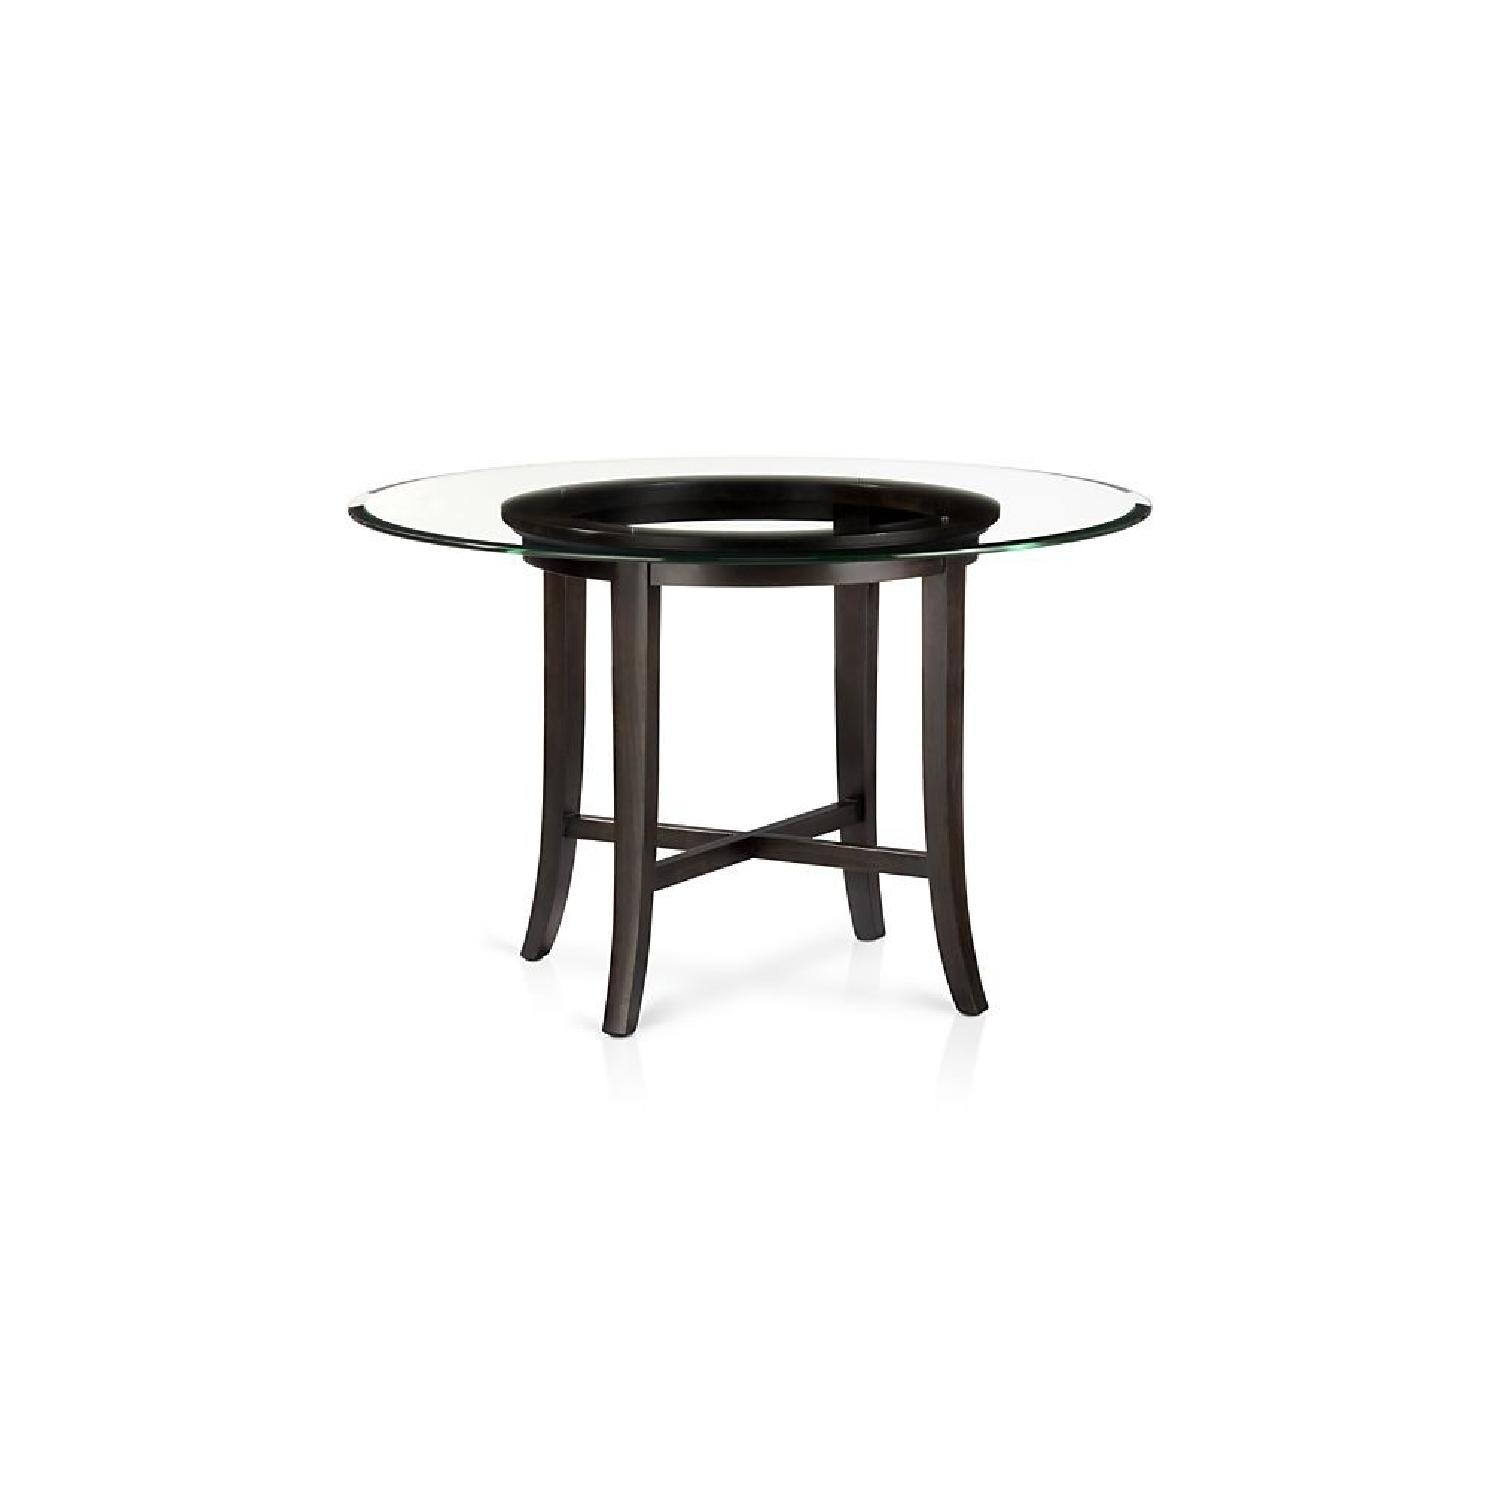 Crate & Barrel Halo Ebony Glass Top Dining Table w/ 2 Chairs-3